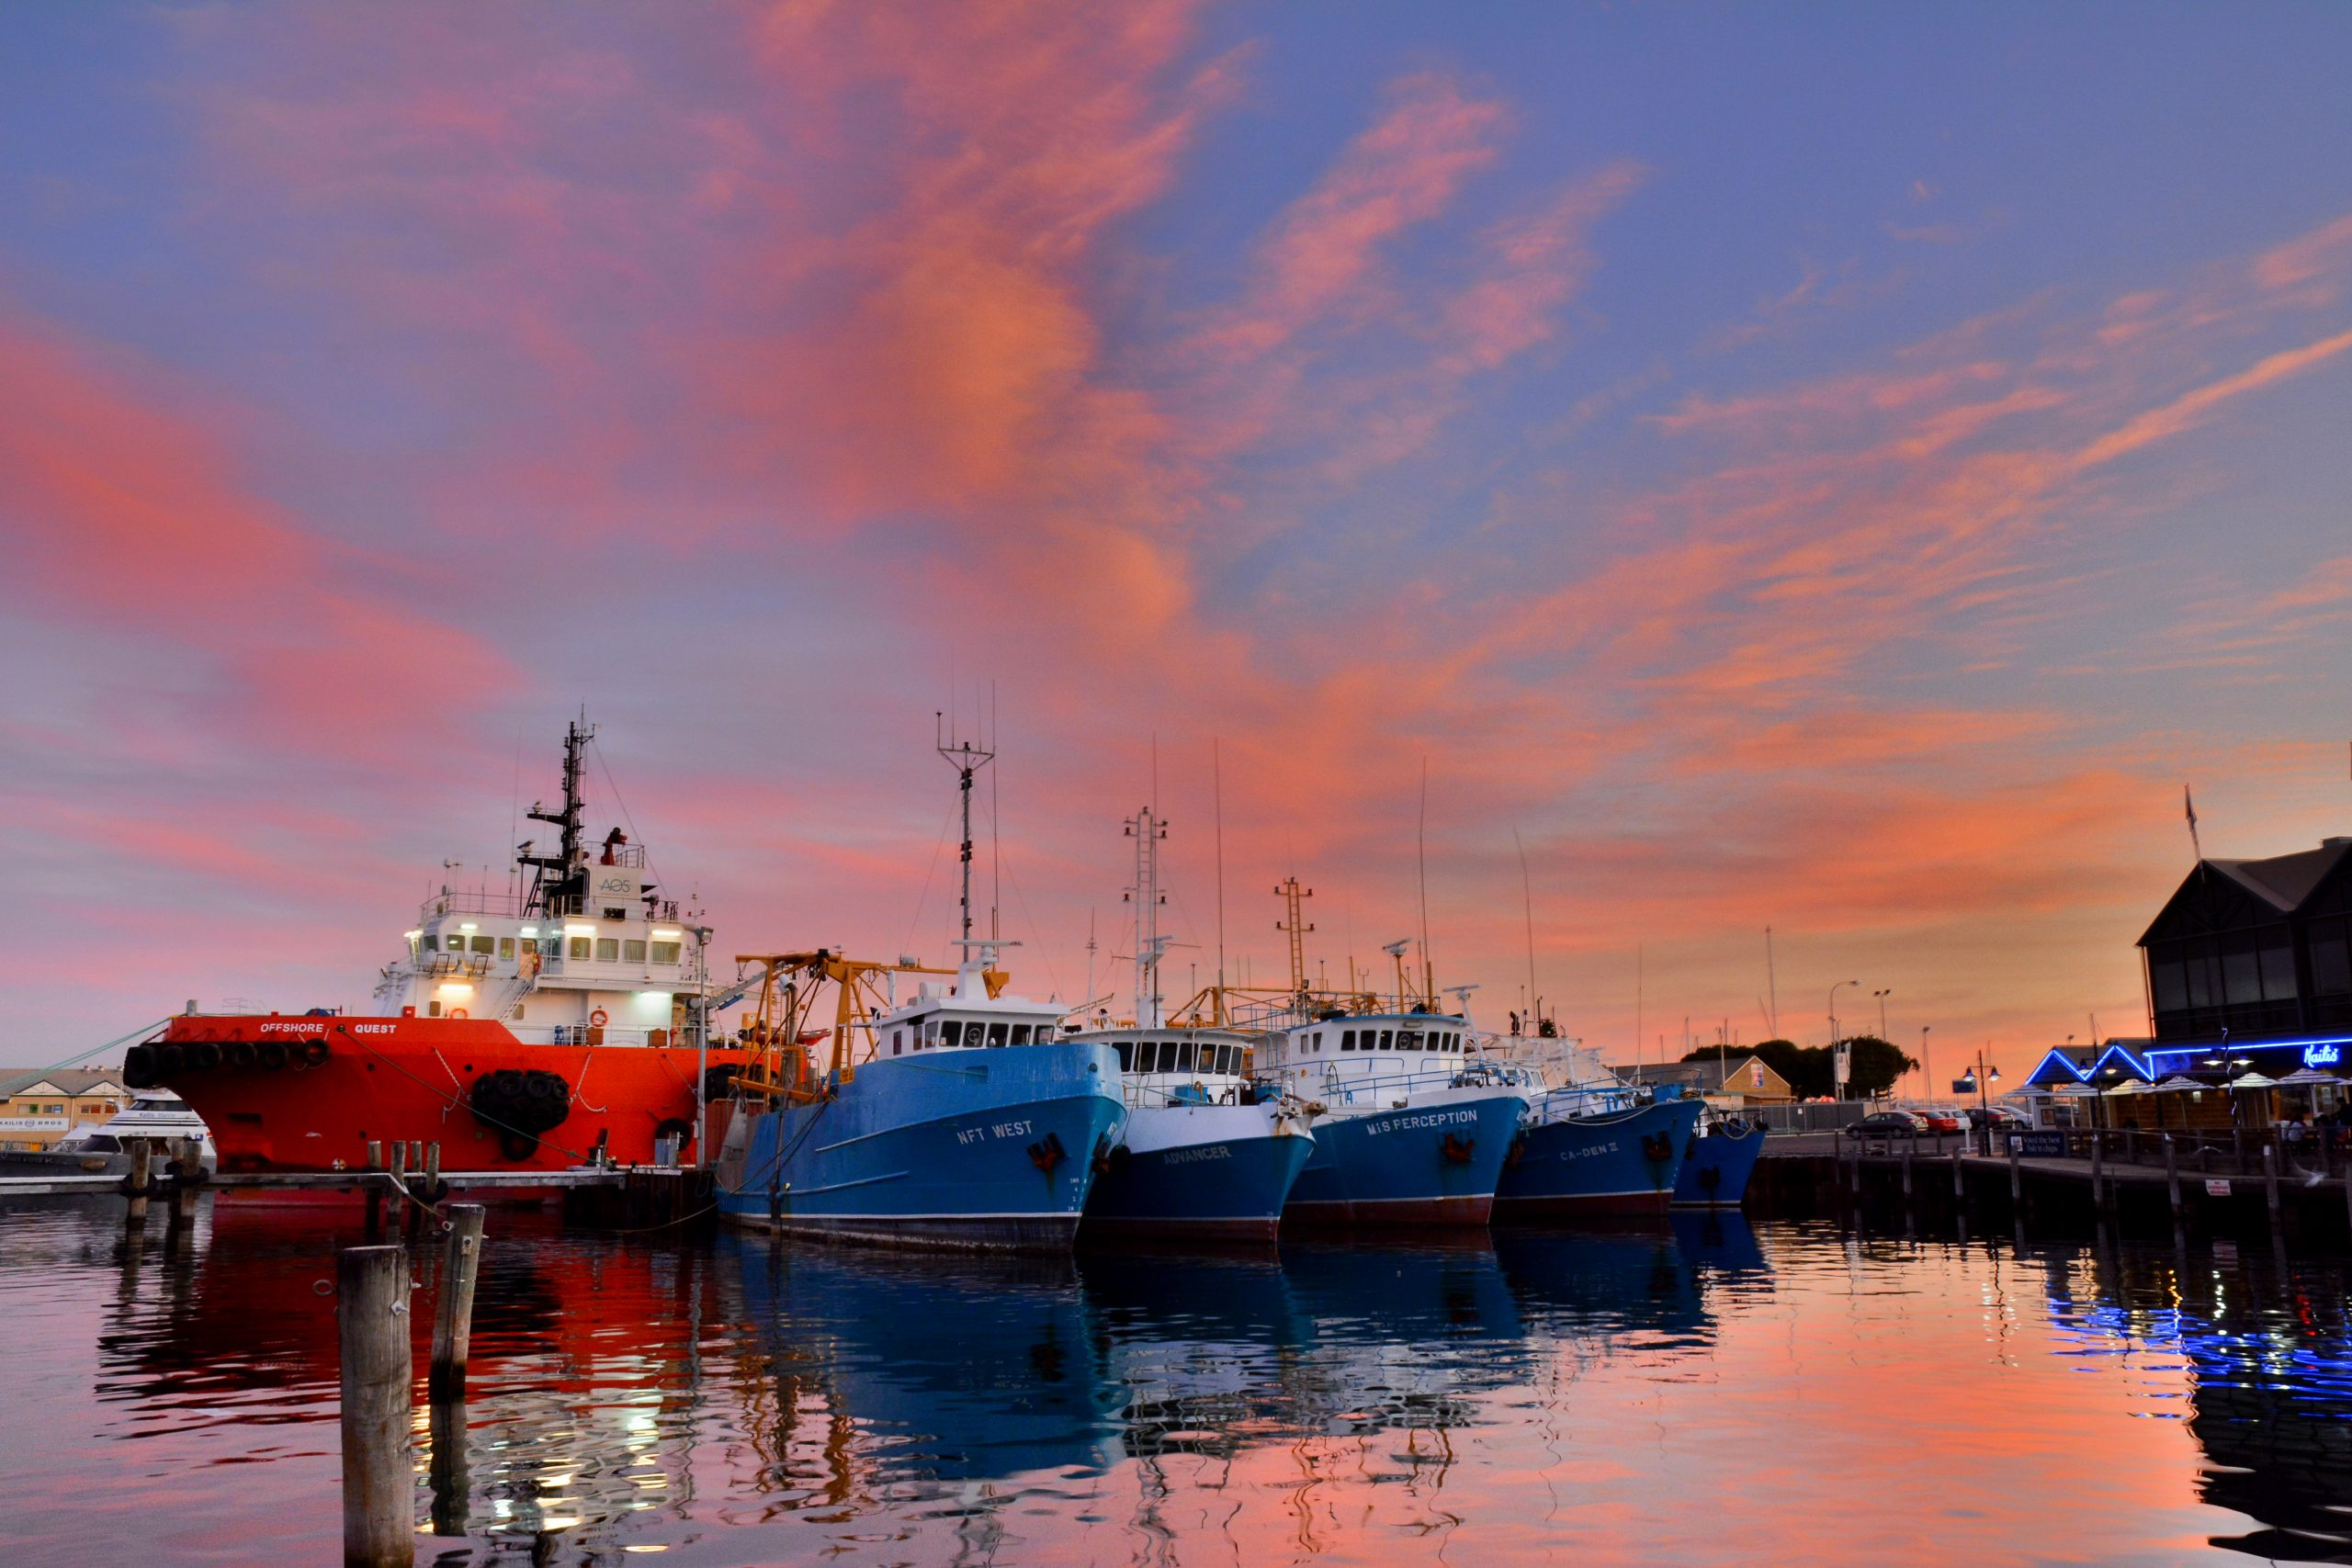 'Our priority is the ocean': Australian seafood industry welcomes World Fisheries Day